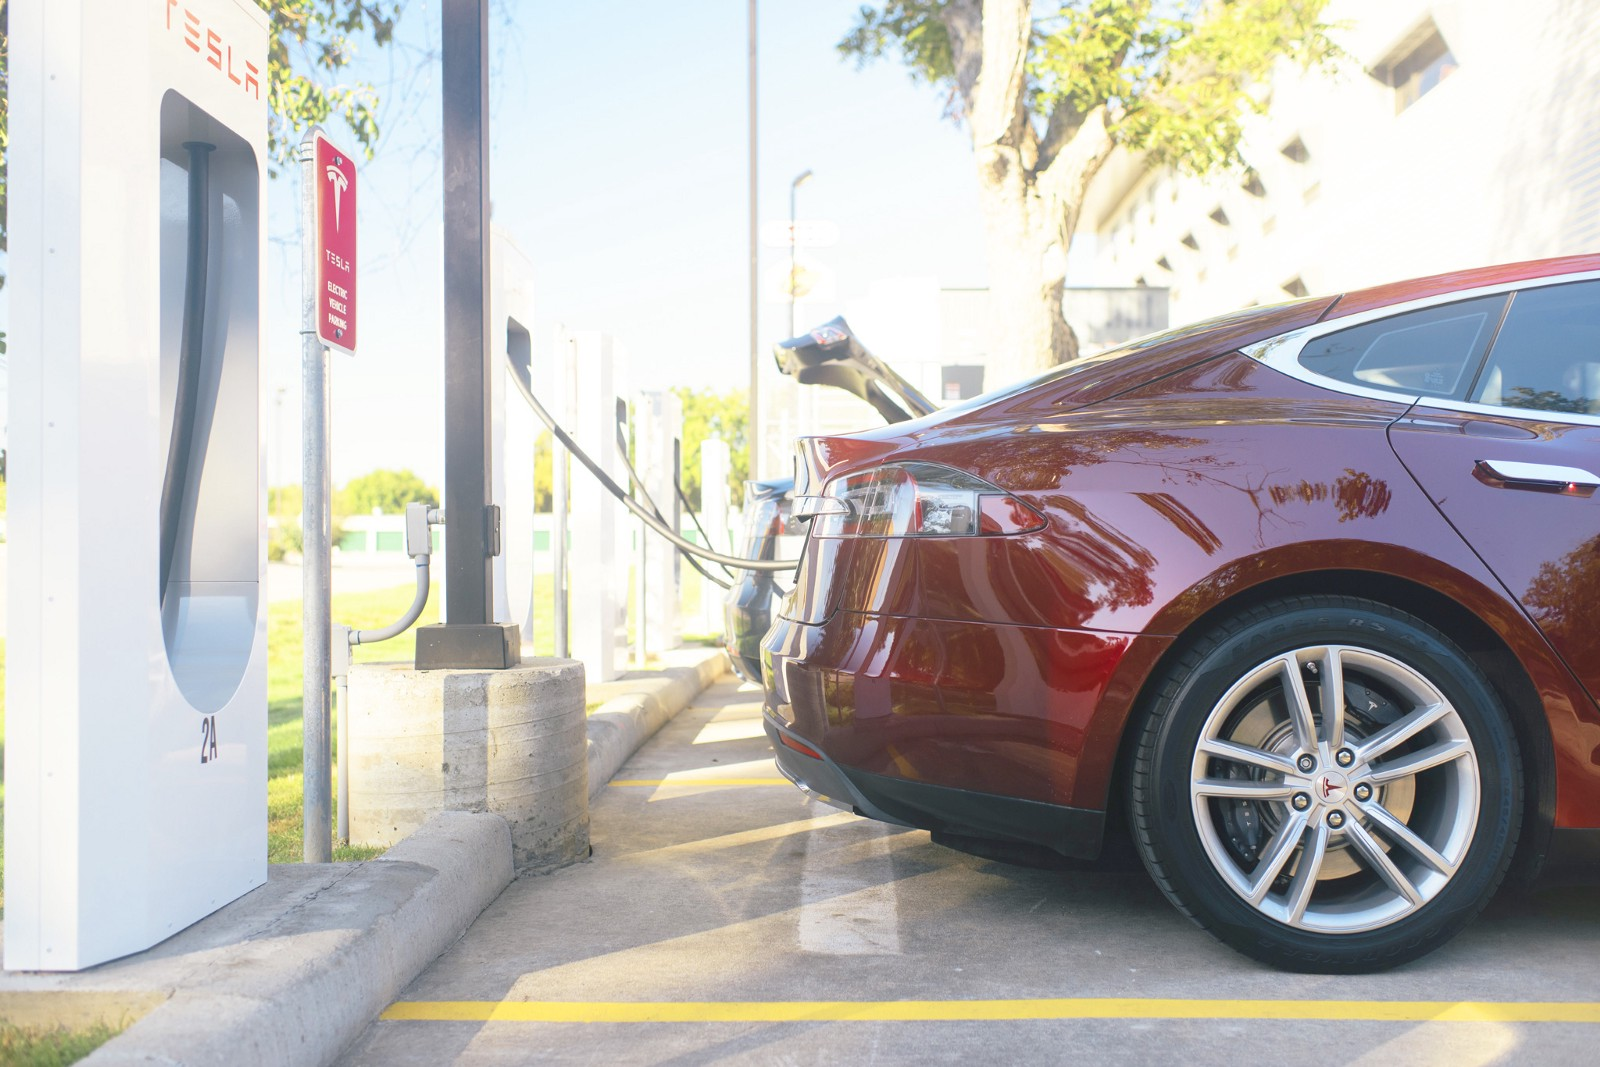 Solar Ed Sustained By Tesla Packs They Operate As The Gas Stations Of Electric Vehicles Teslas Pull Up Soon On Their Own Find A Parking